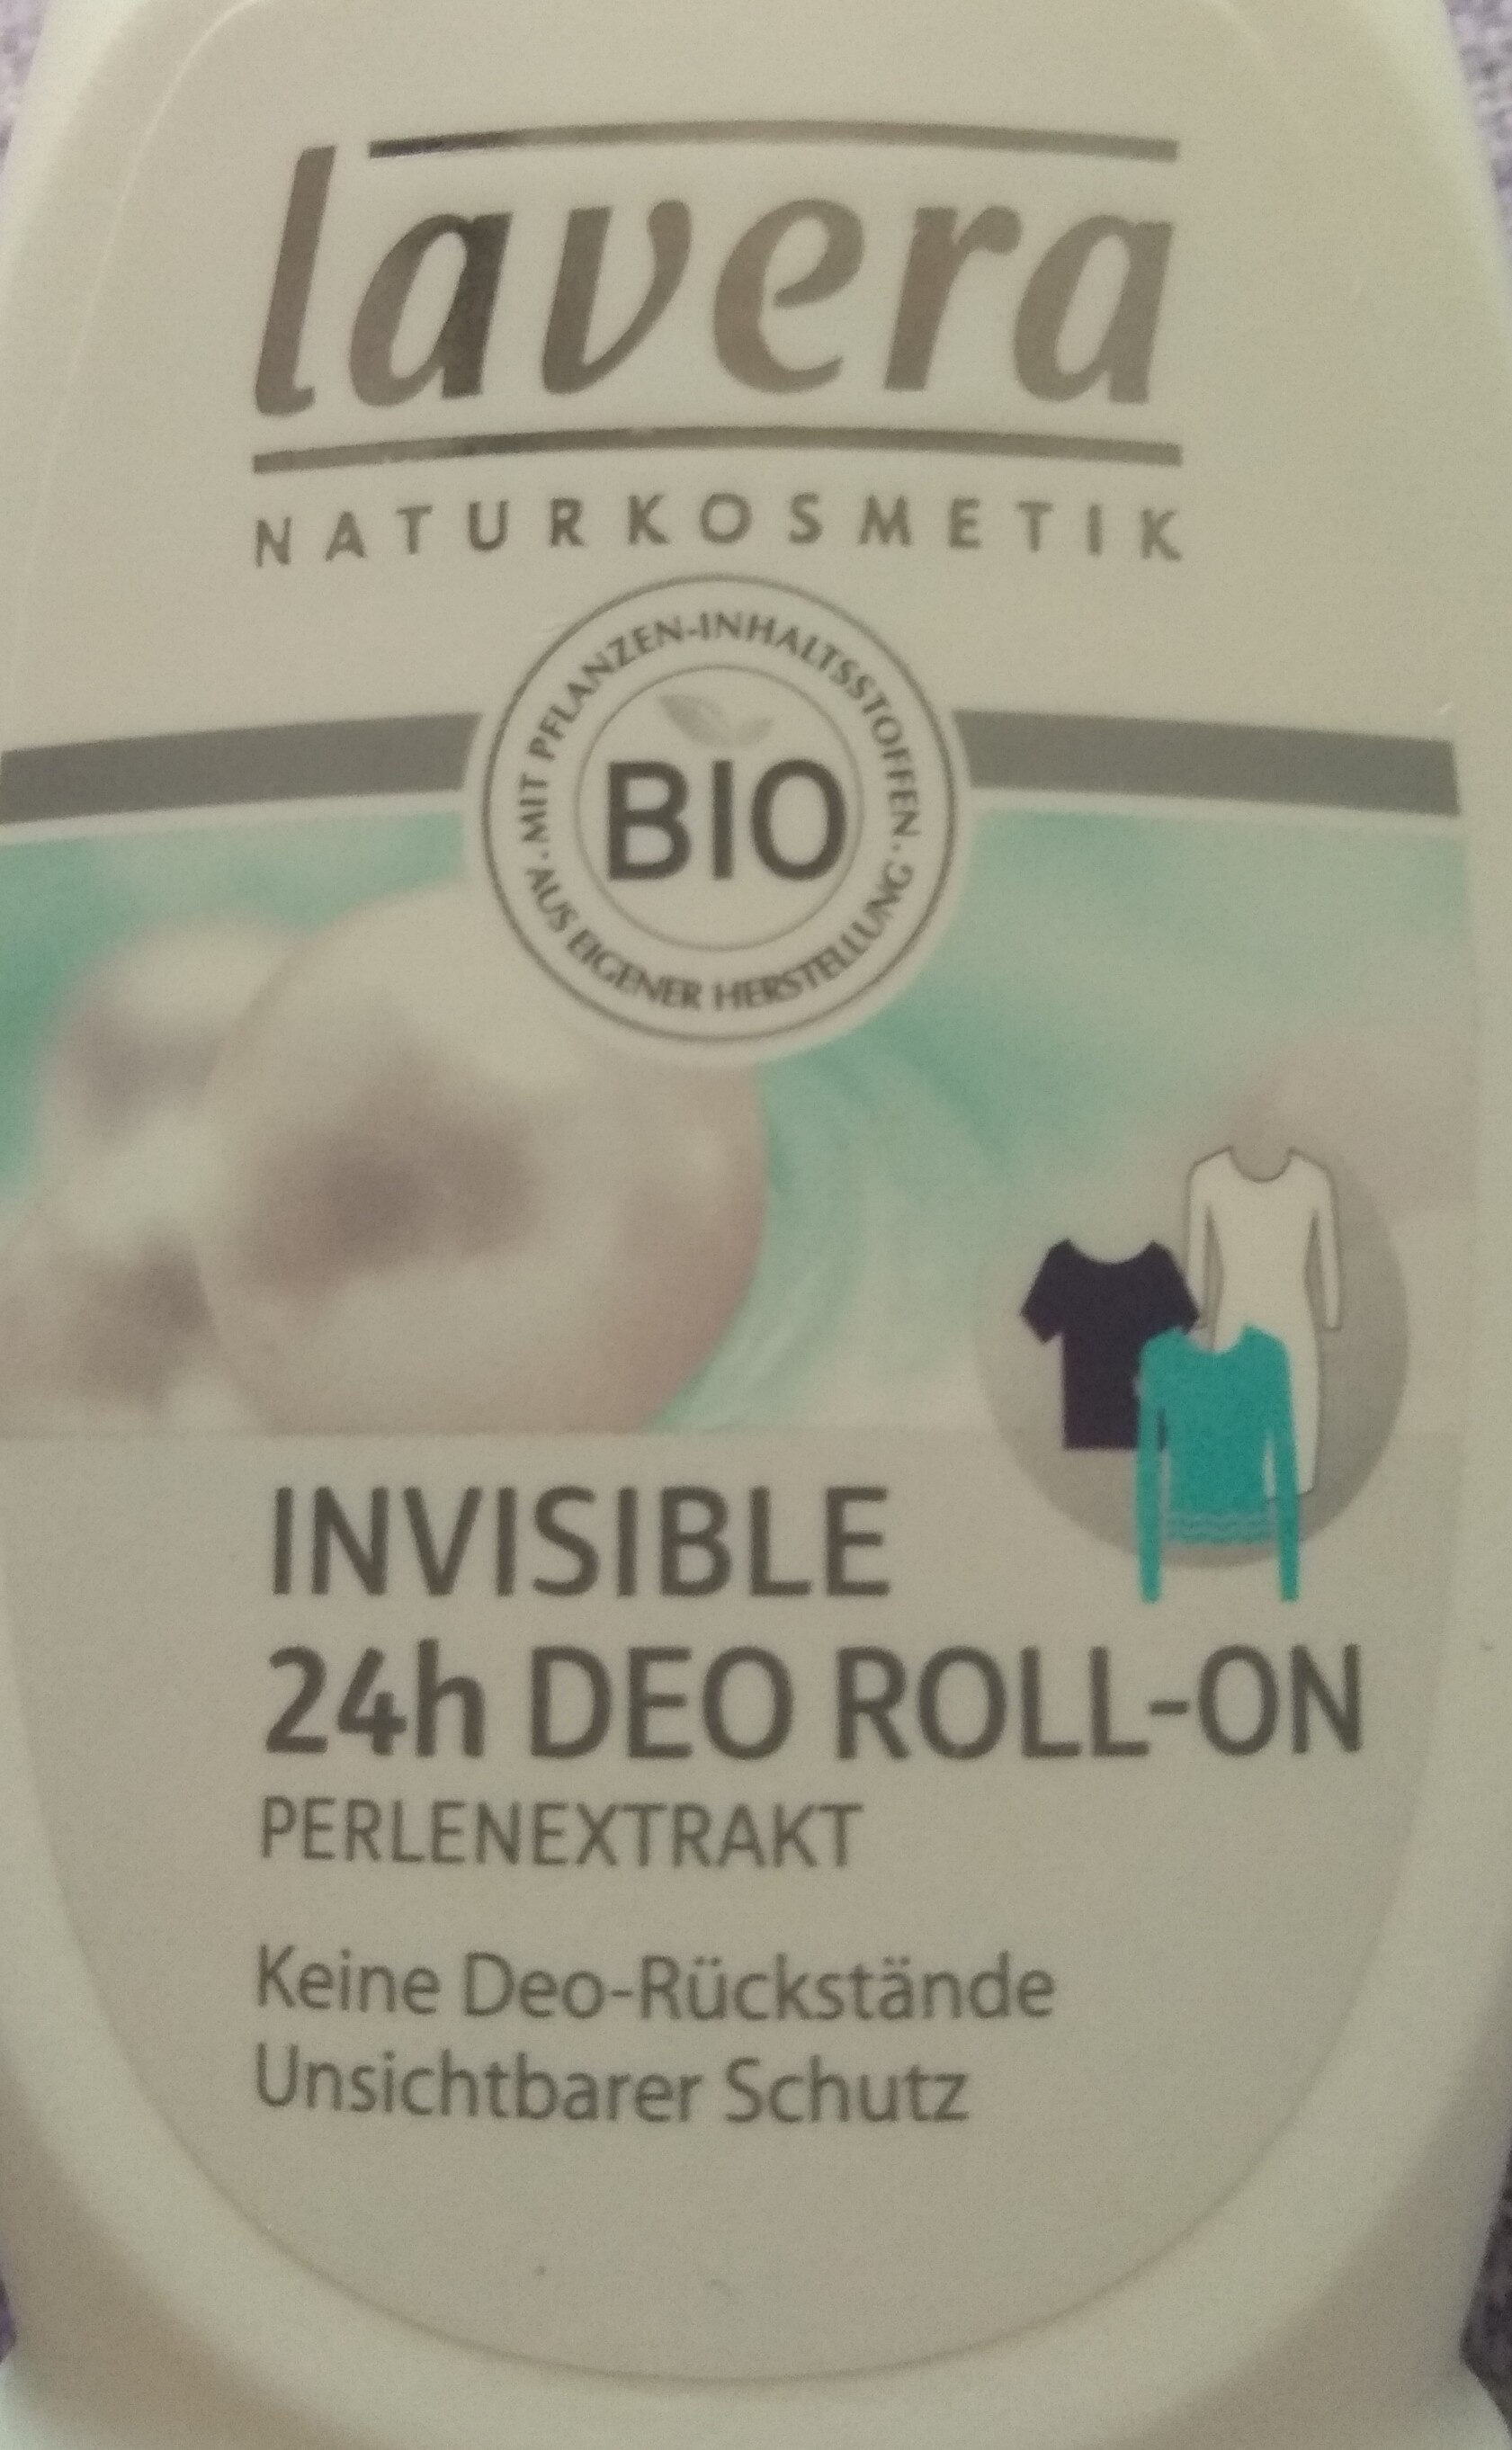 Deo Roll-on Invisible 24h - Product